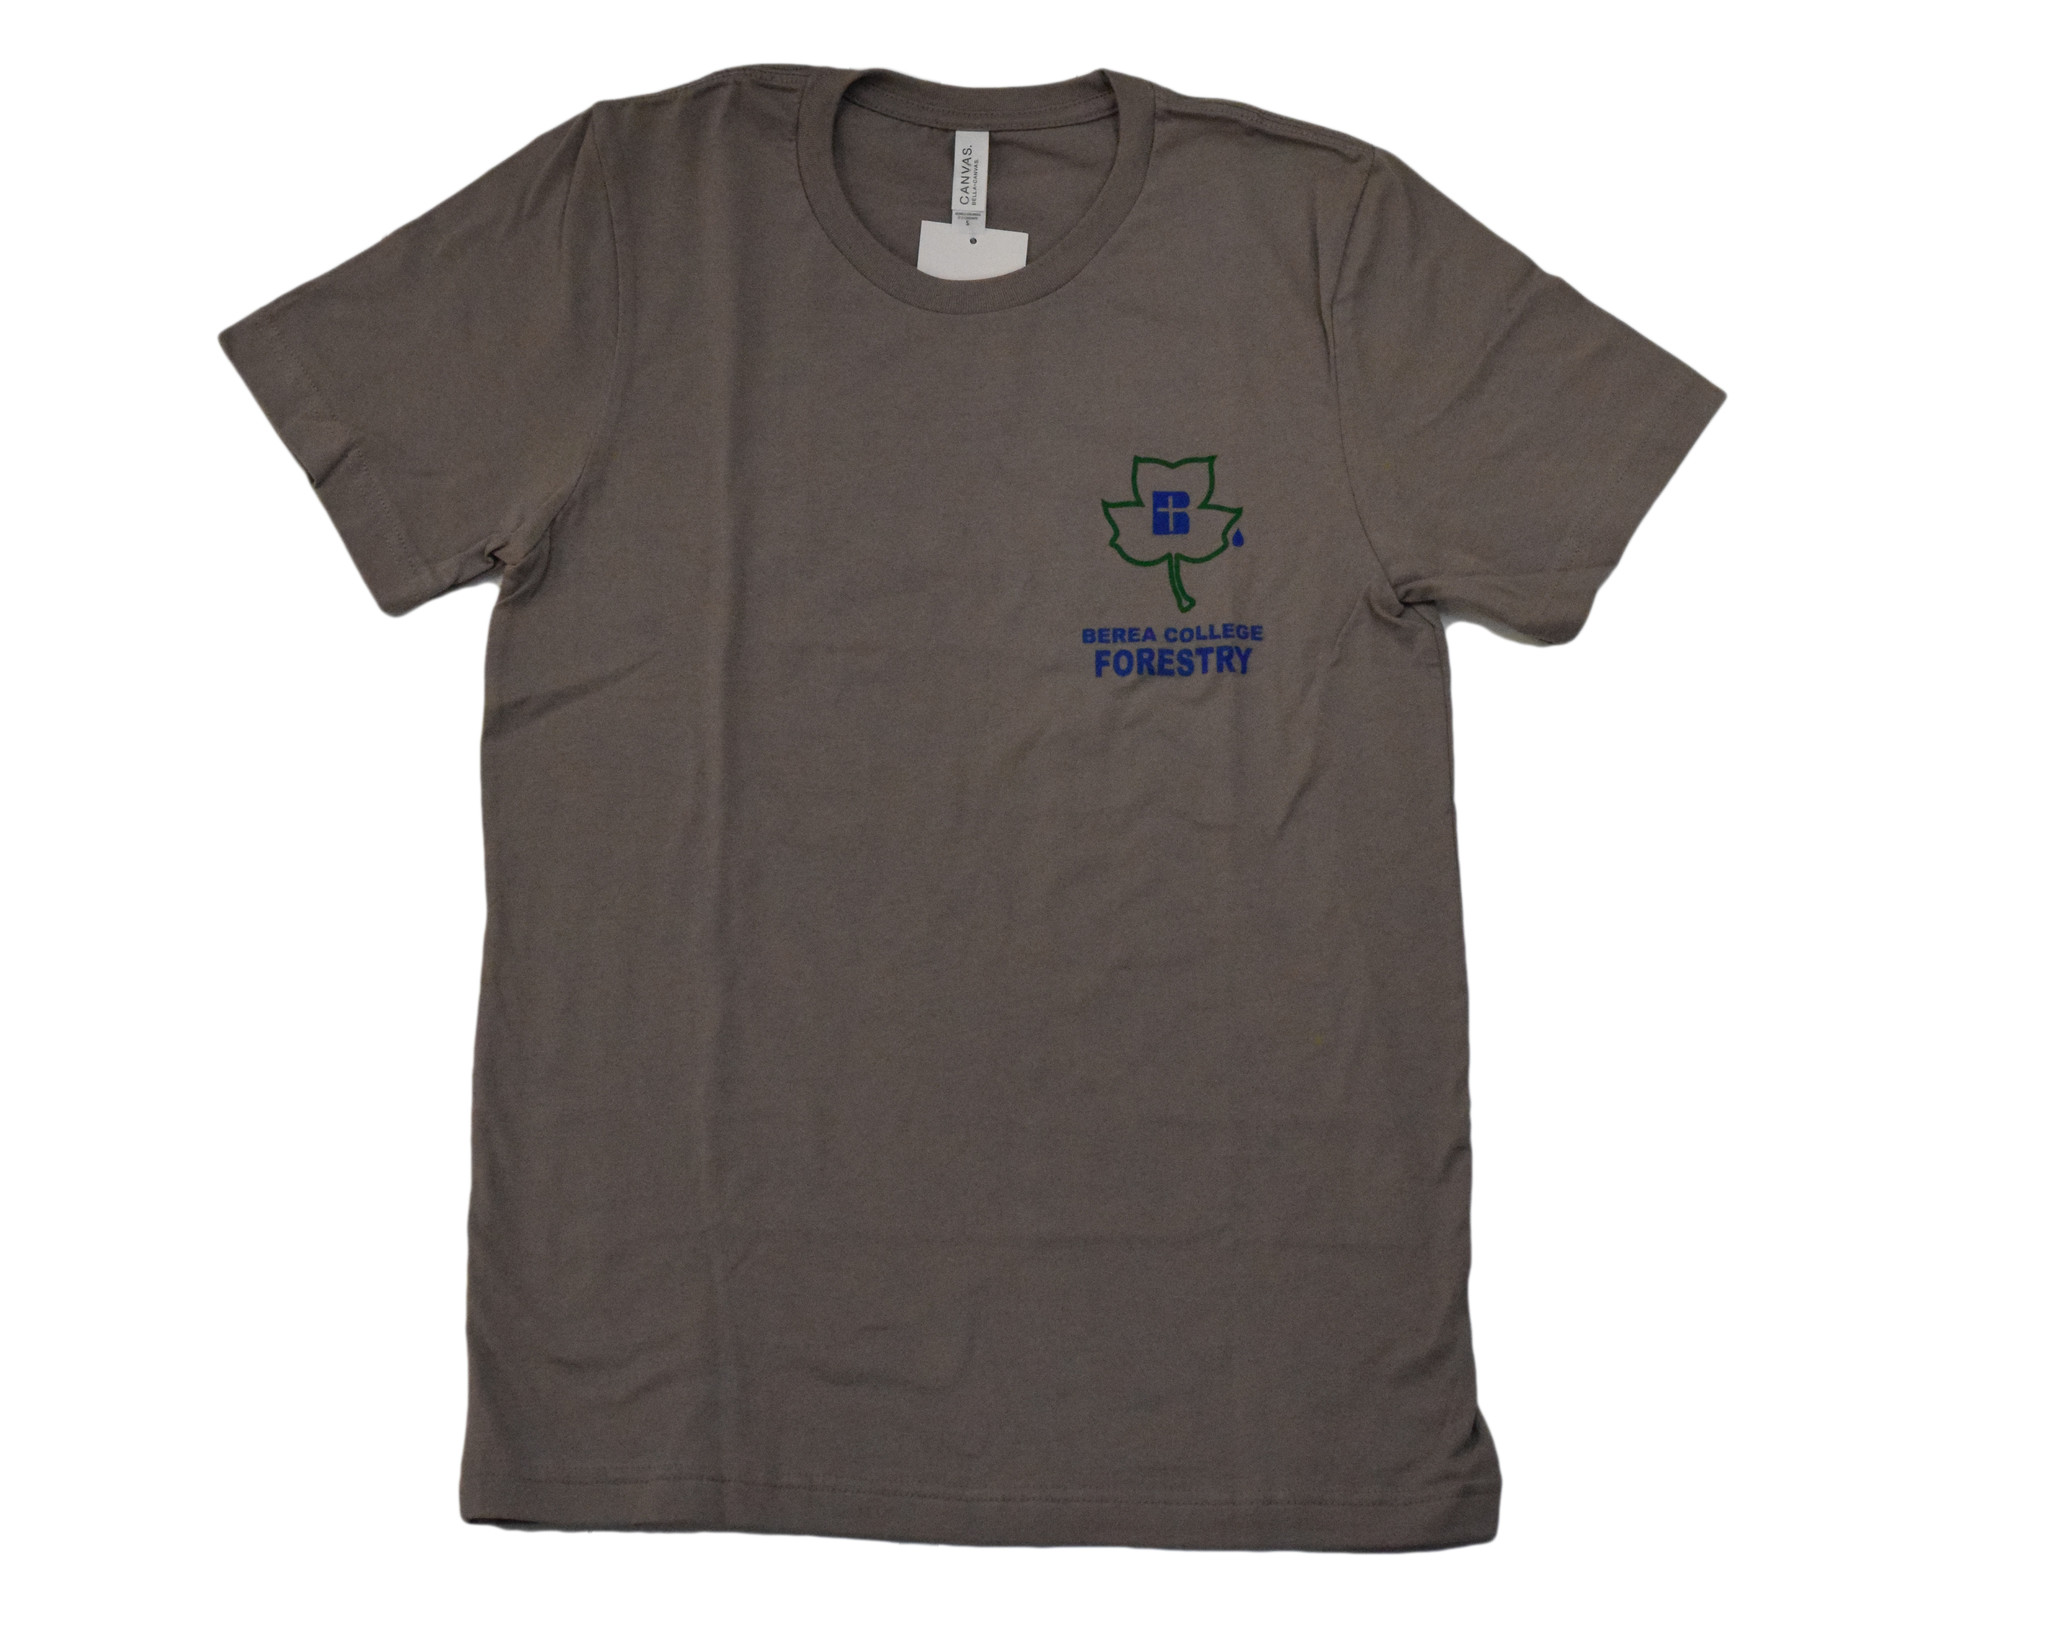 Berea College Forestry T-shirt-2